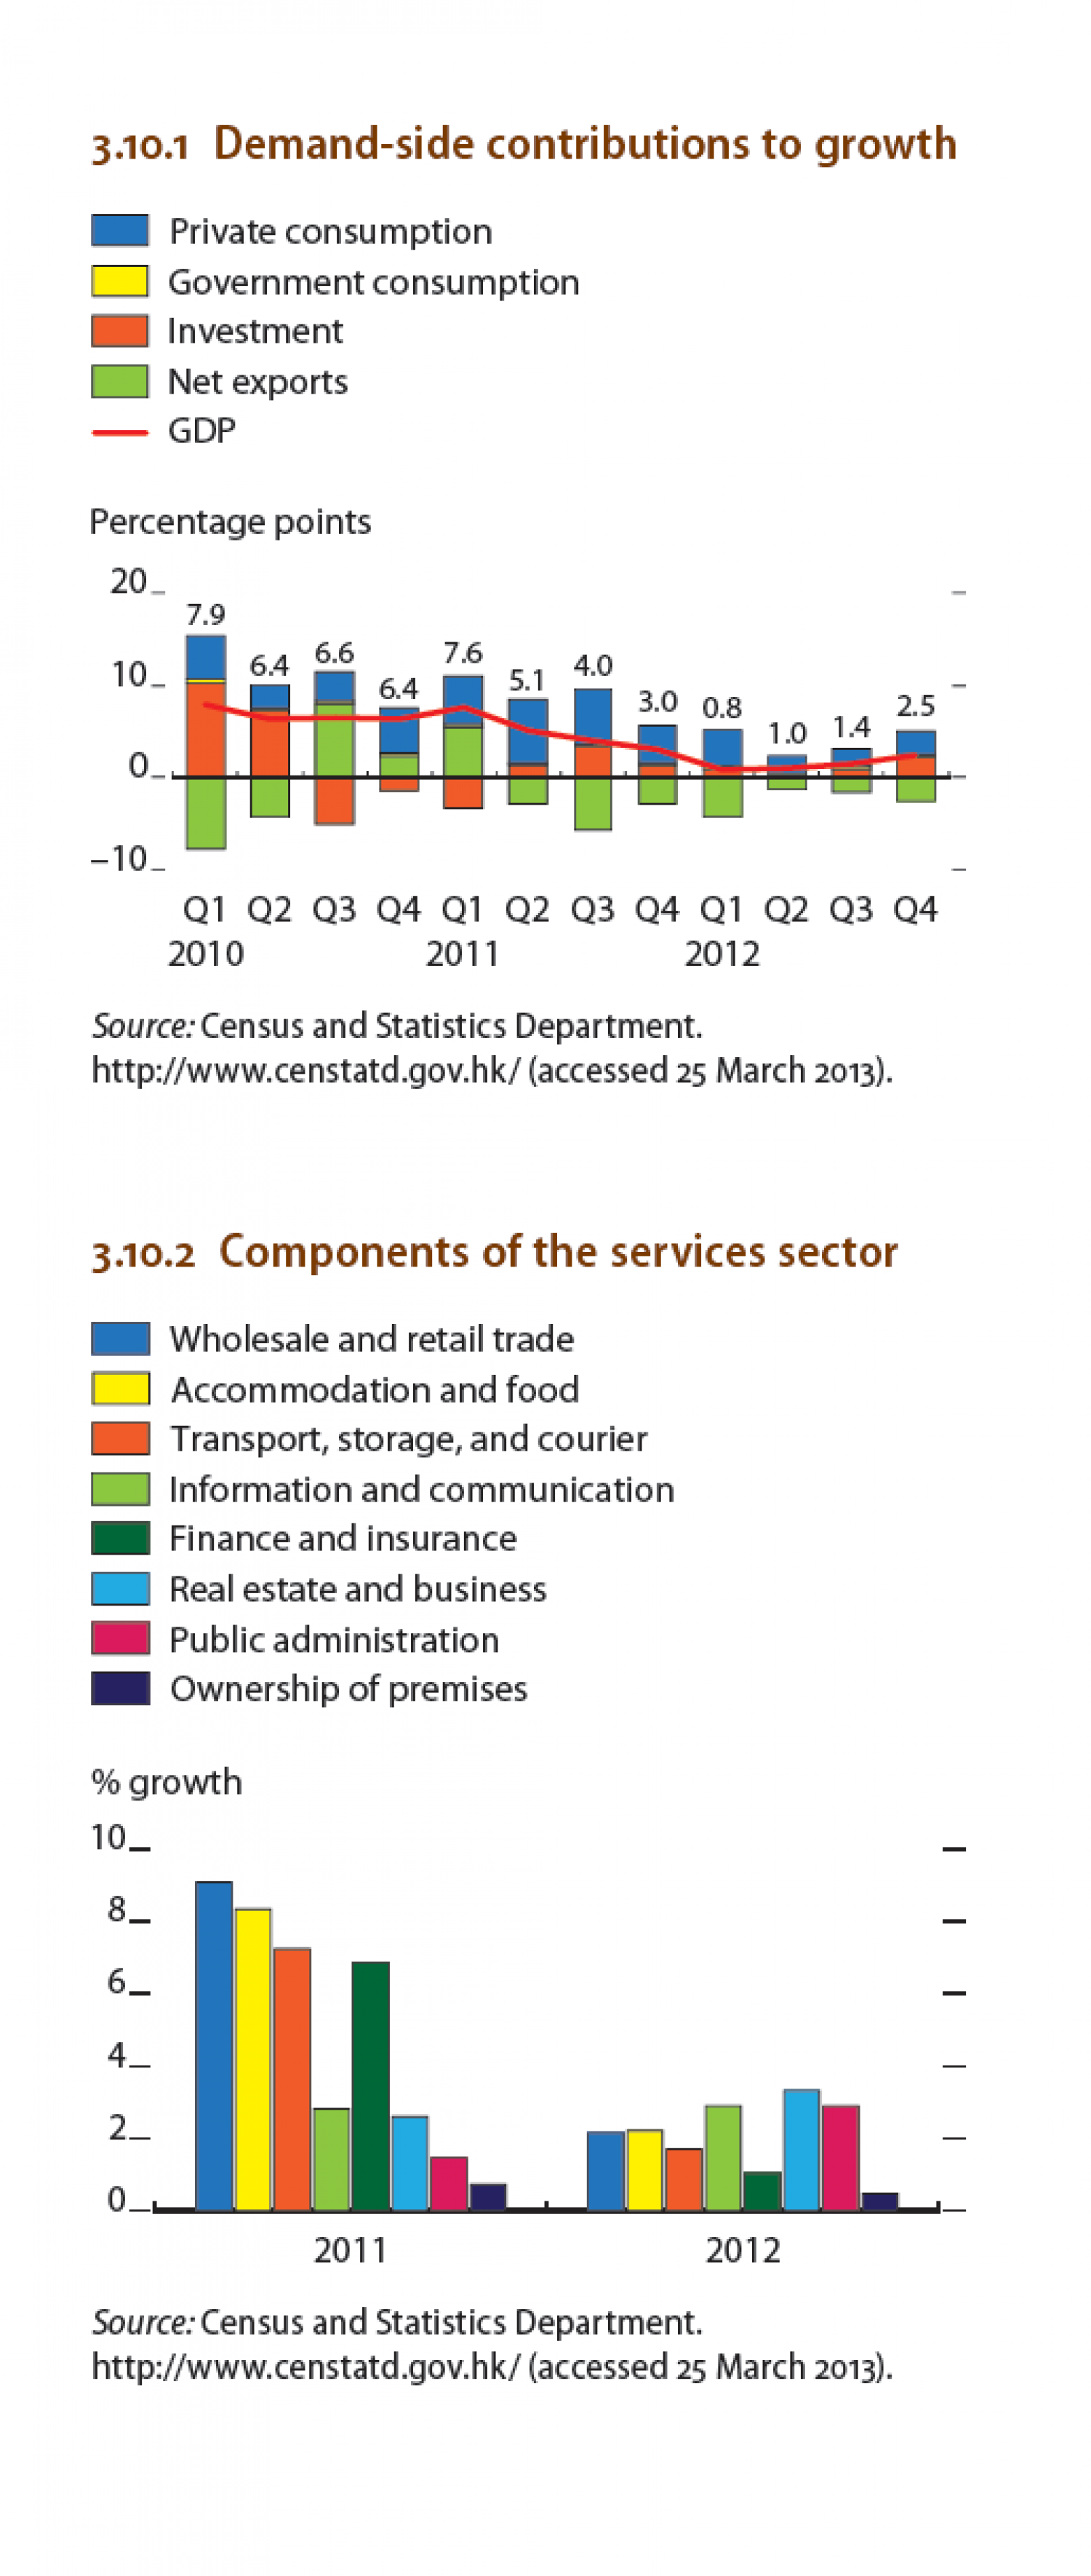 Hong Kong - Demand-side contributions to growth, Components of the services sector Infographic